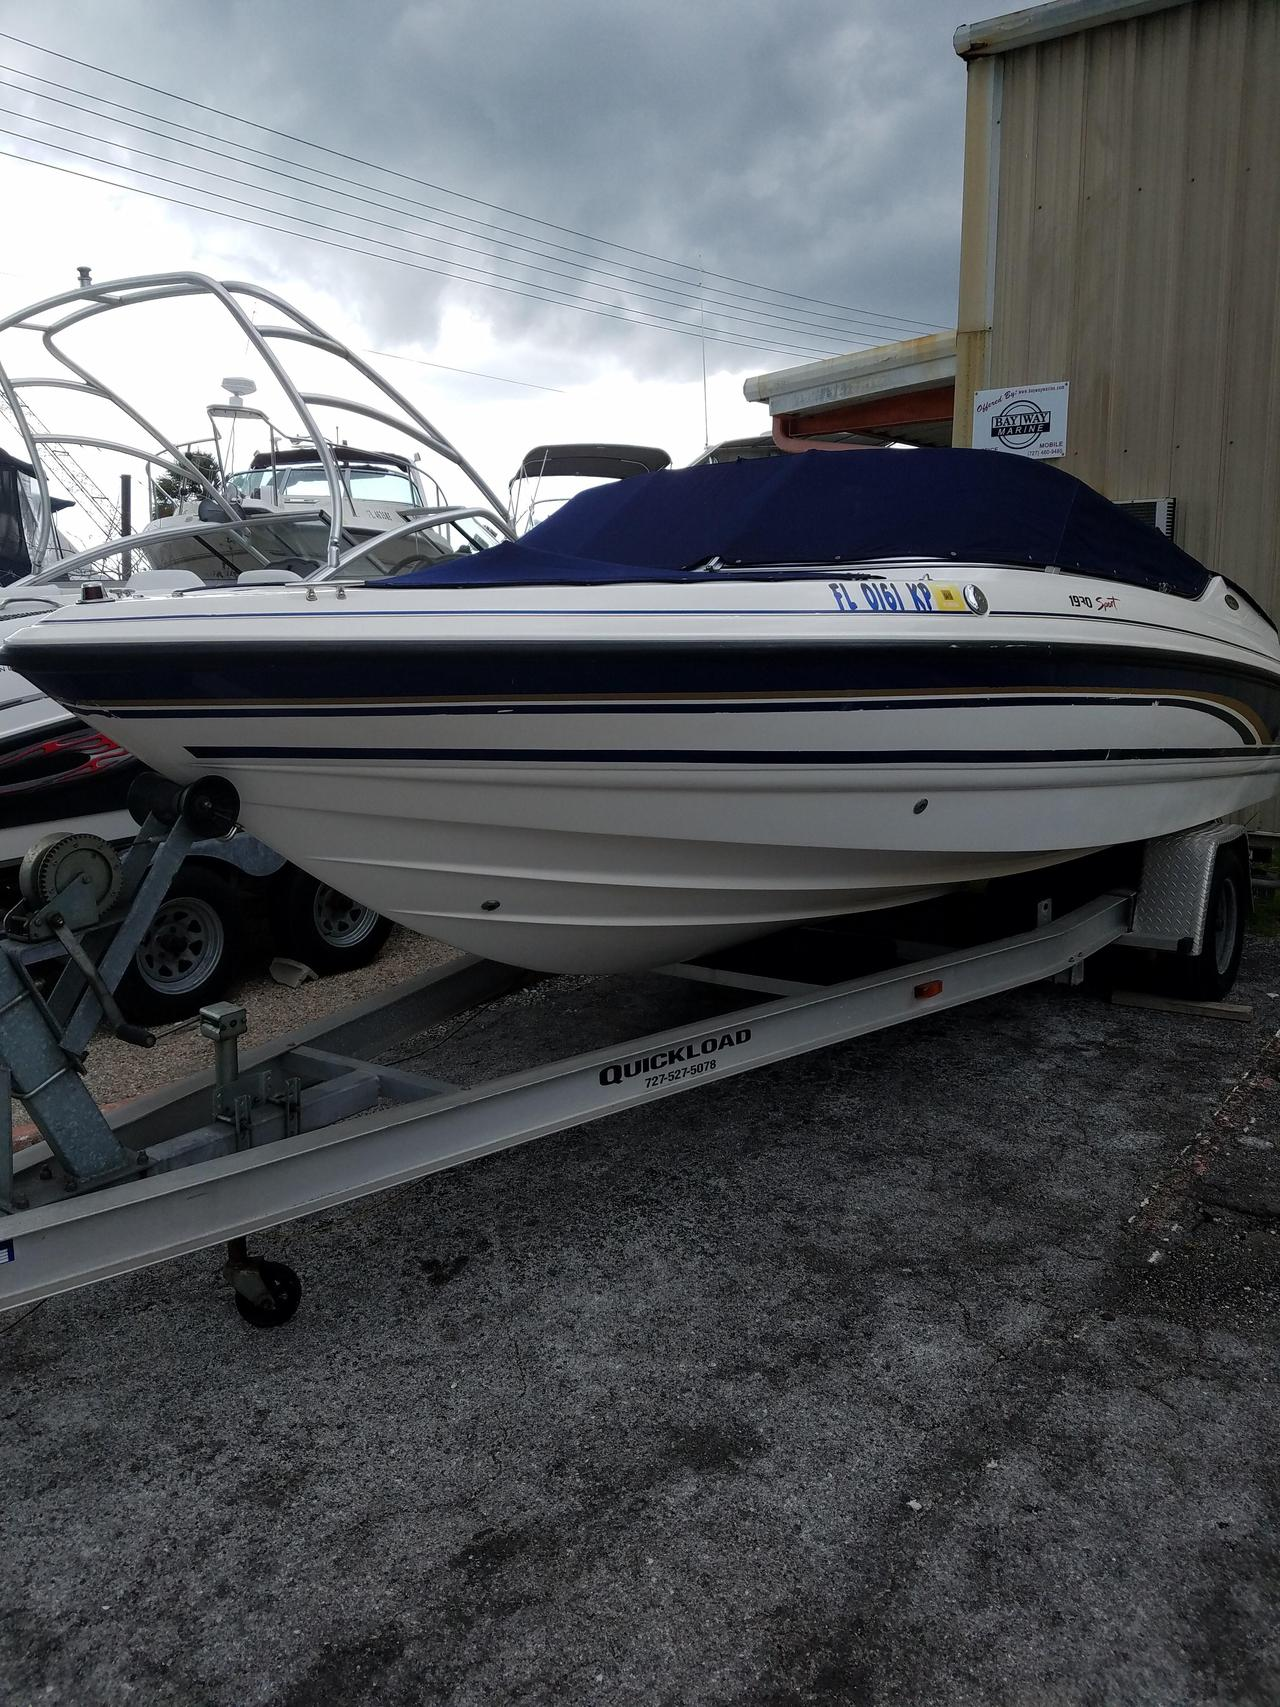 1999 Used Chaparral 1930 Sport Bowrider Boat For Sale - $7,995